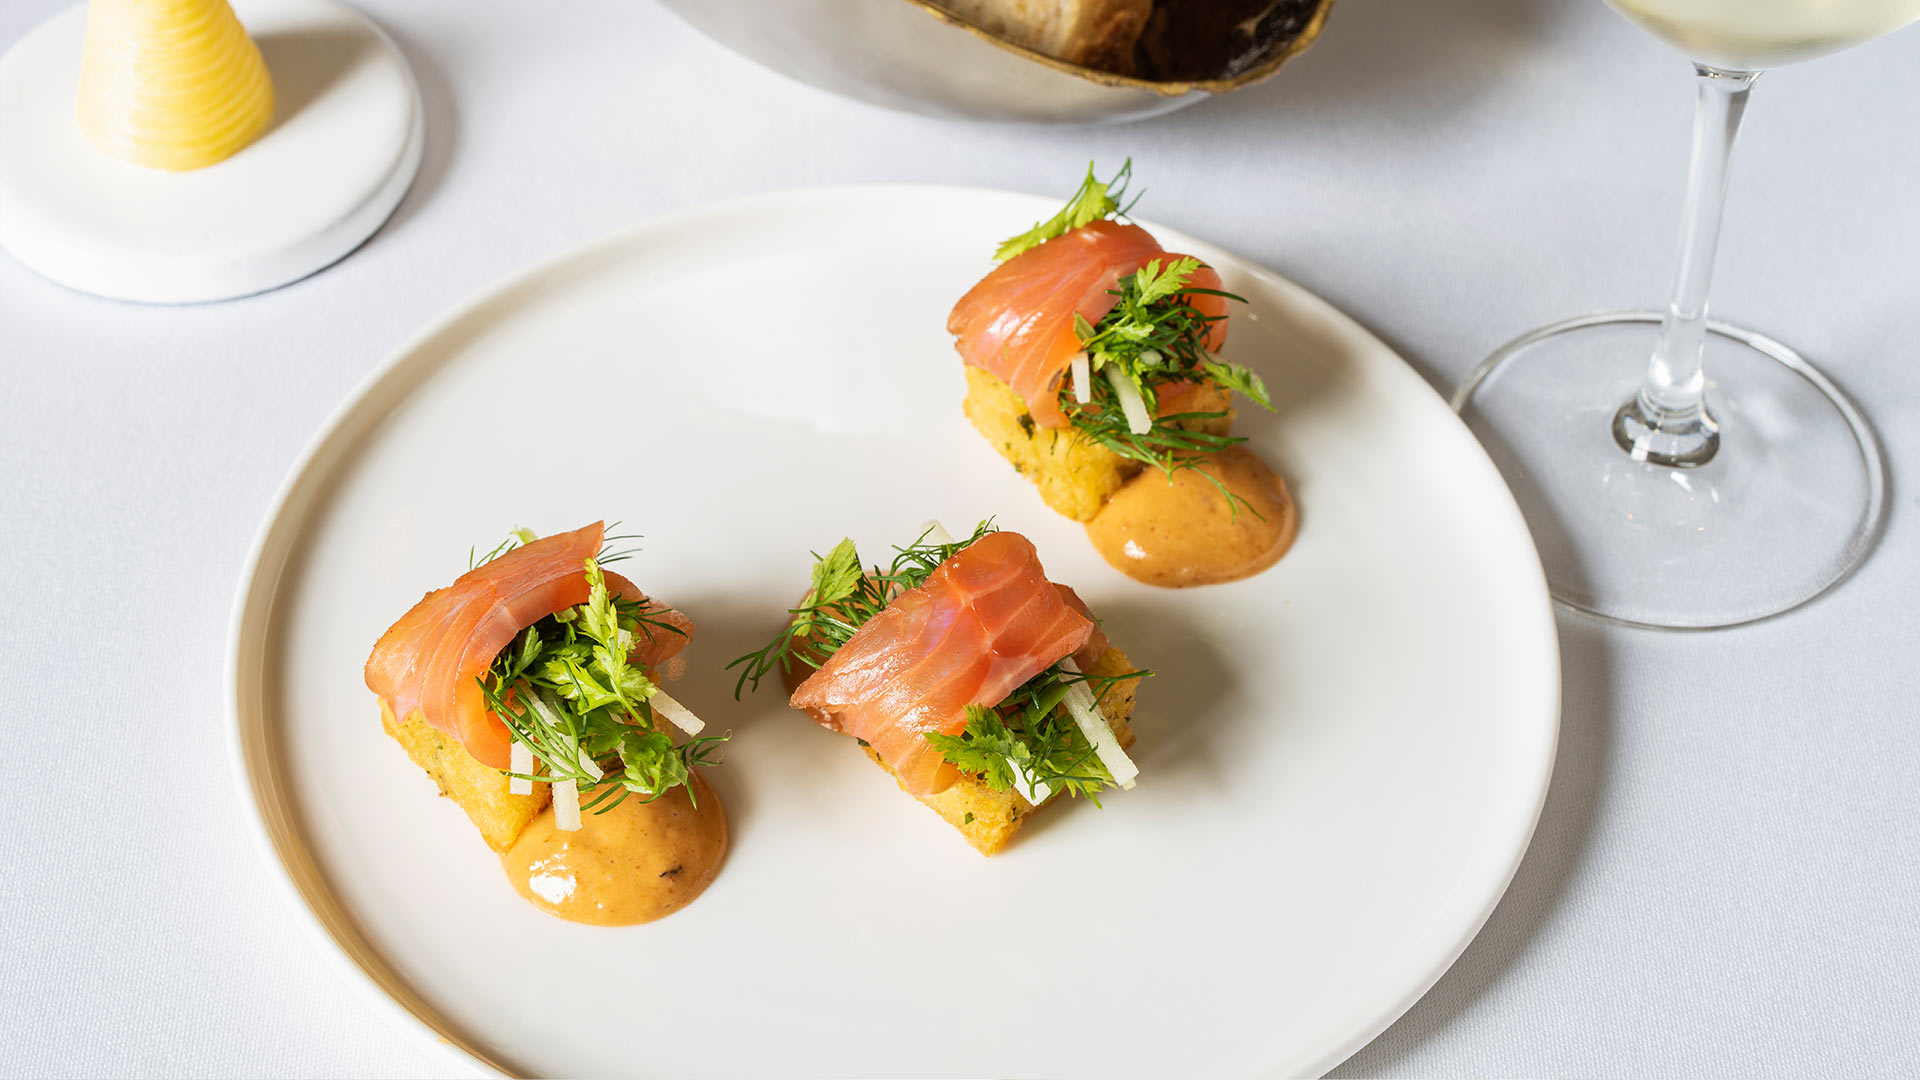 Crisp-potato-rosti,-whisky-smoked-salmon-v-1920x1080